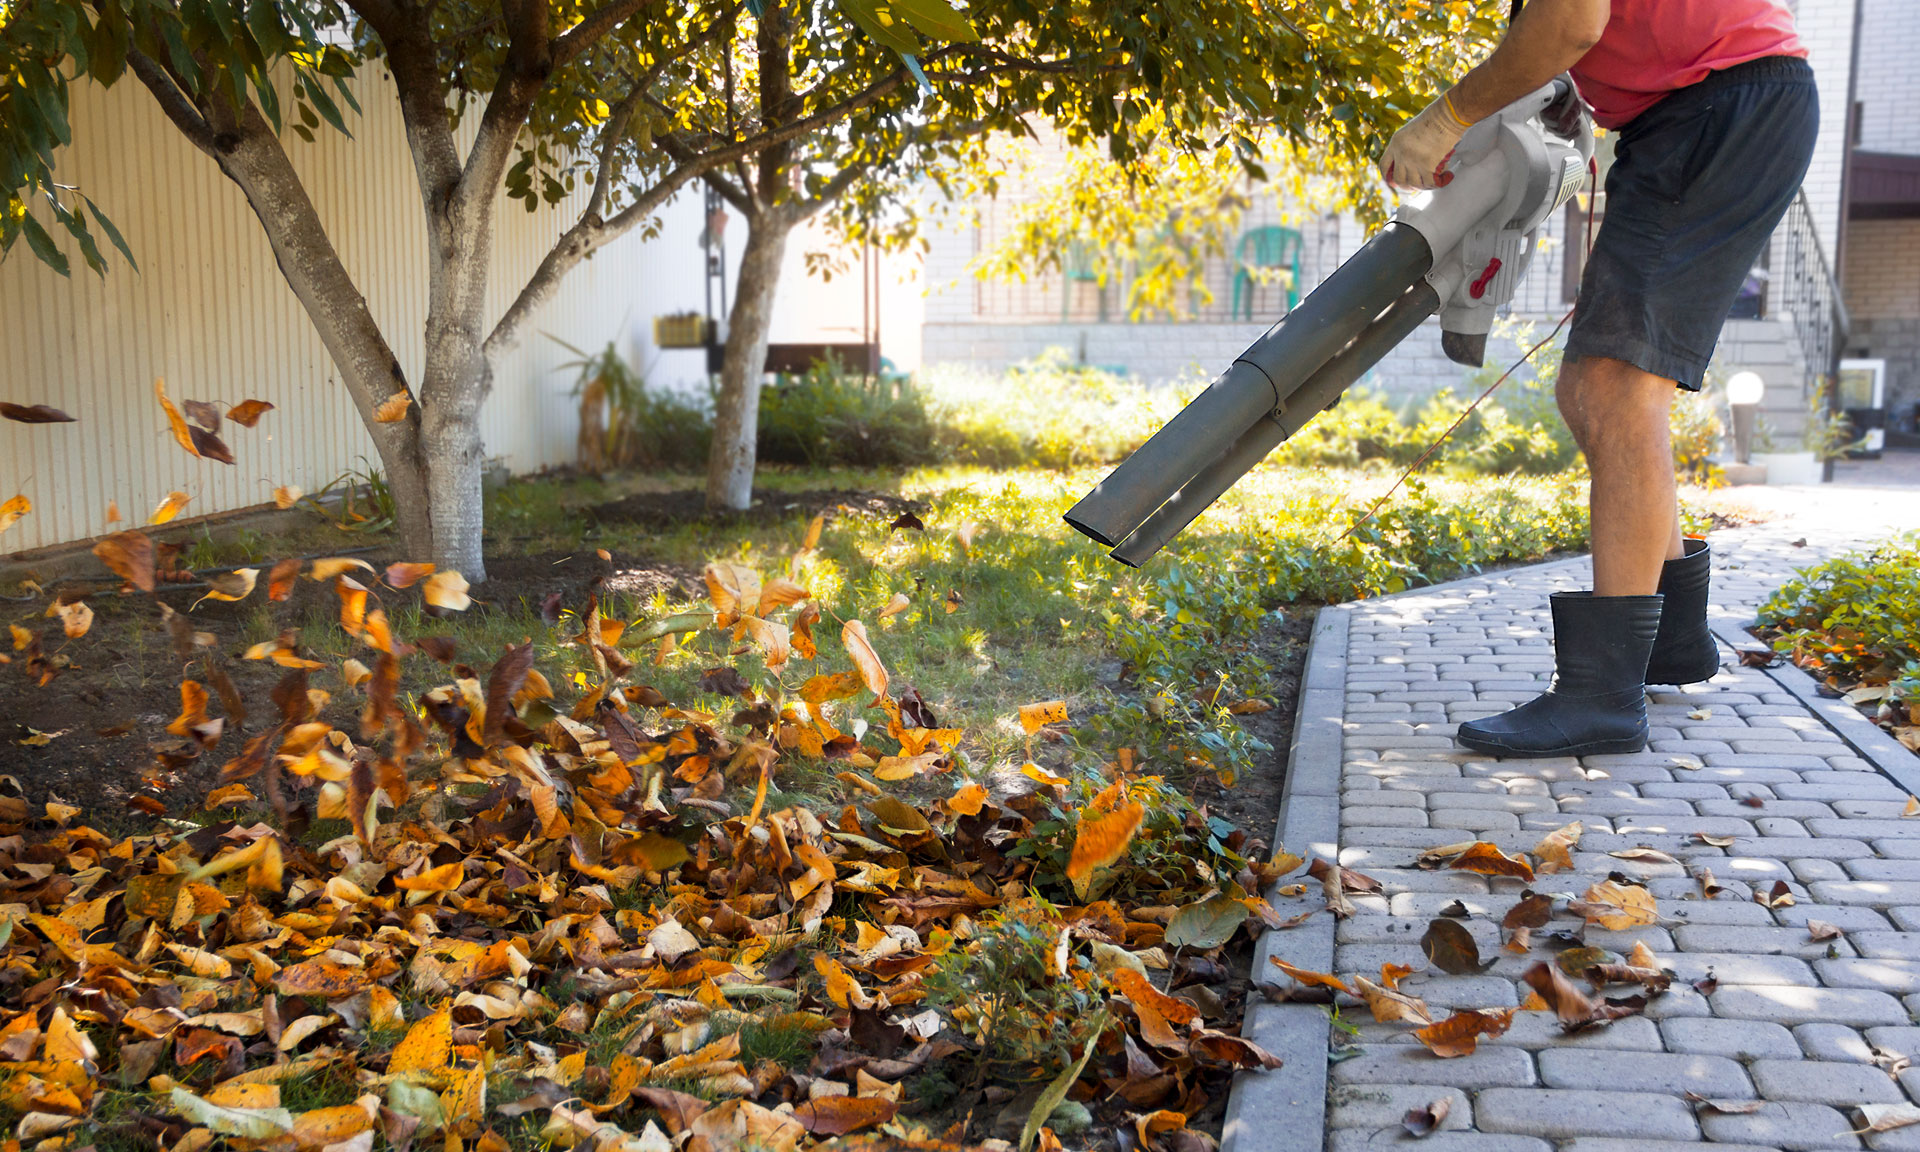 Lidl's has cheap leaf blowers on sale, but are they worth buying? – Which? News